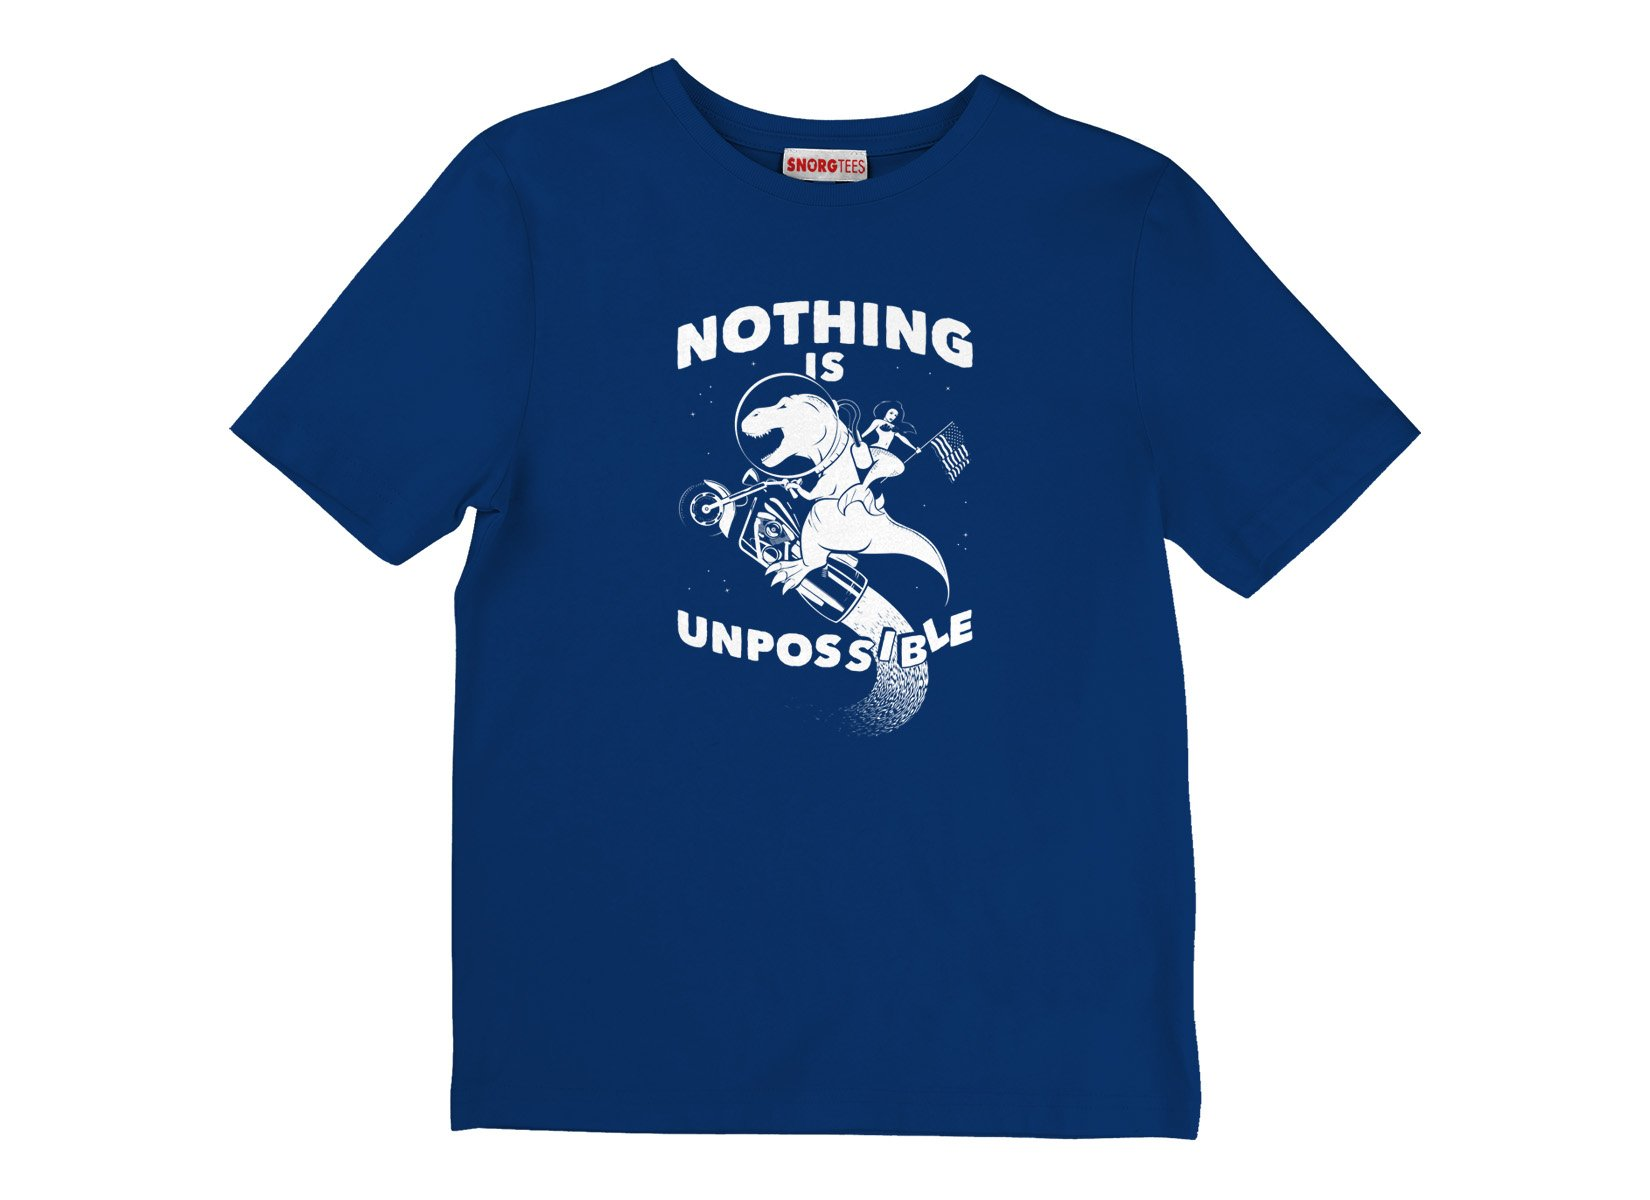 Nothing Is Unpossible on Kids T-Shirt